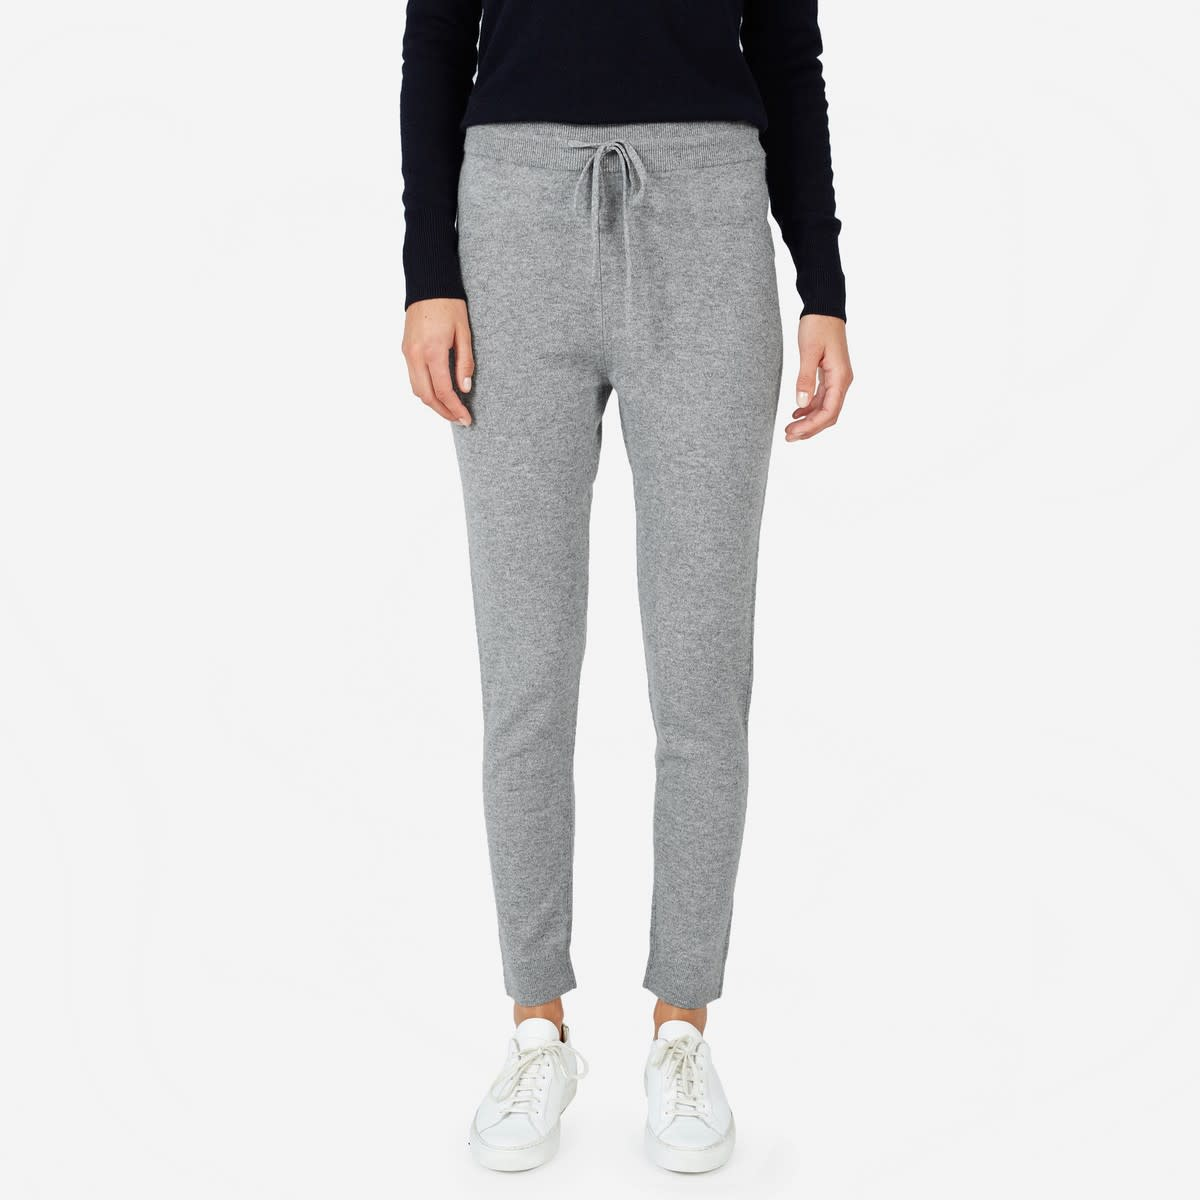 The Cashmere Sweatpant, $140, available at Everlane.